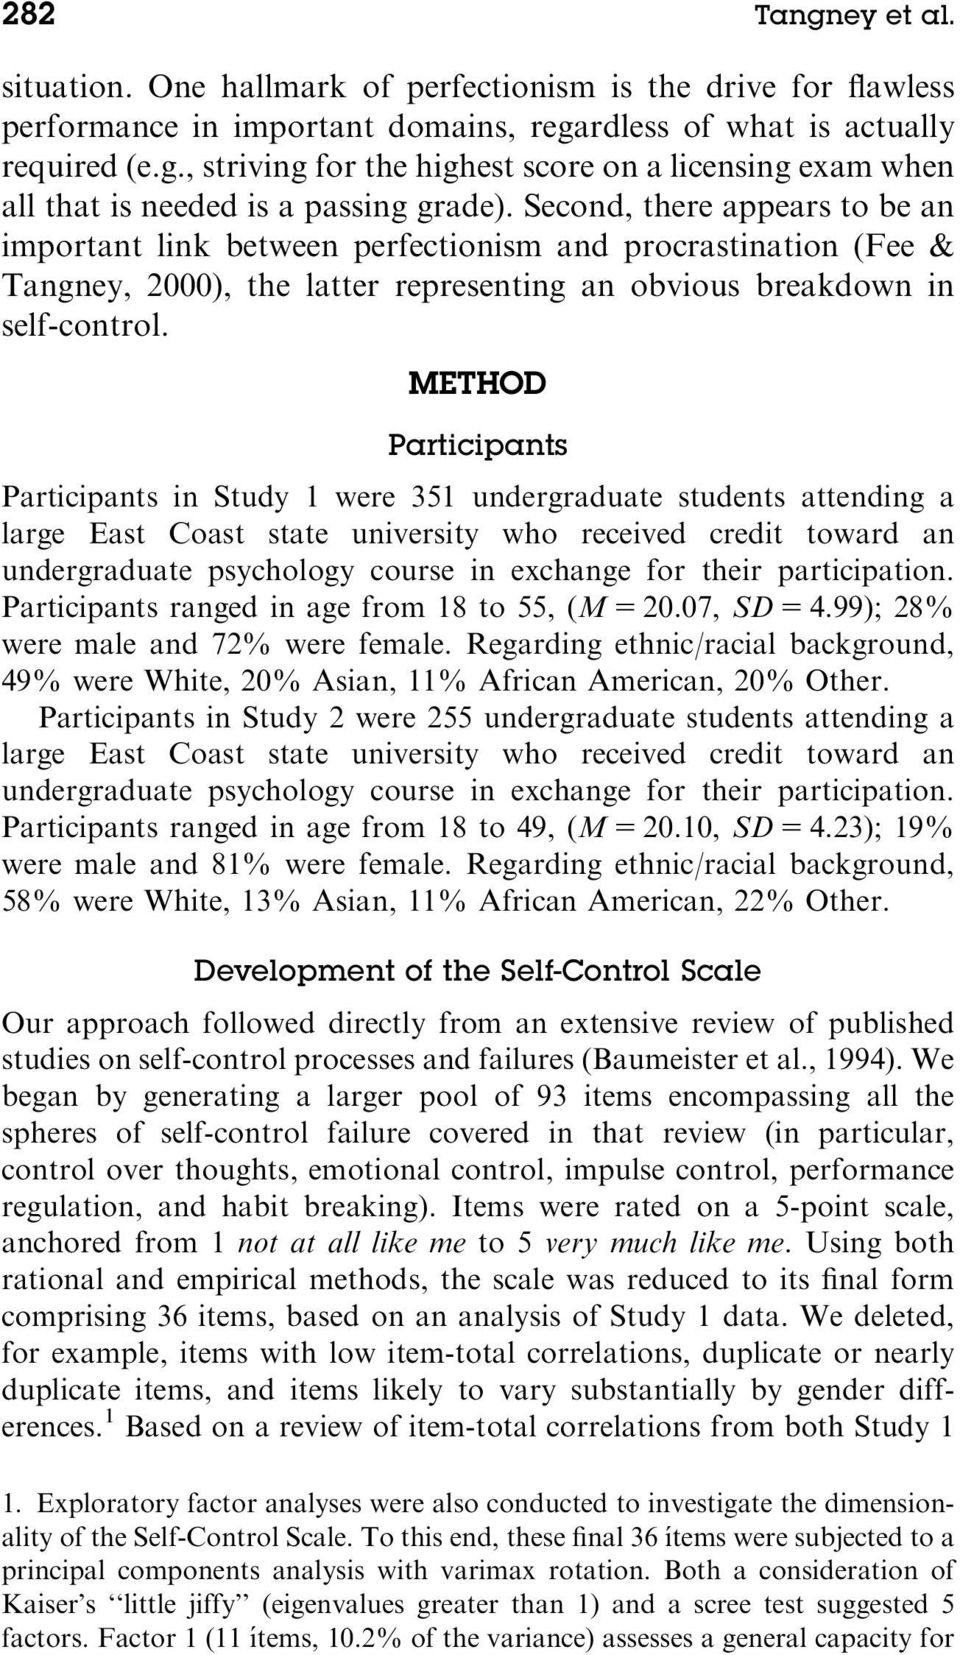 METHOD Participants Participants in Study 1 were 351 undergraduate students attending a large East Coast state university who received credit toward an undergraduate psychology course in exchange for